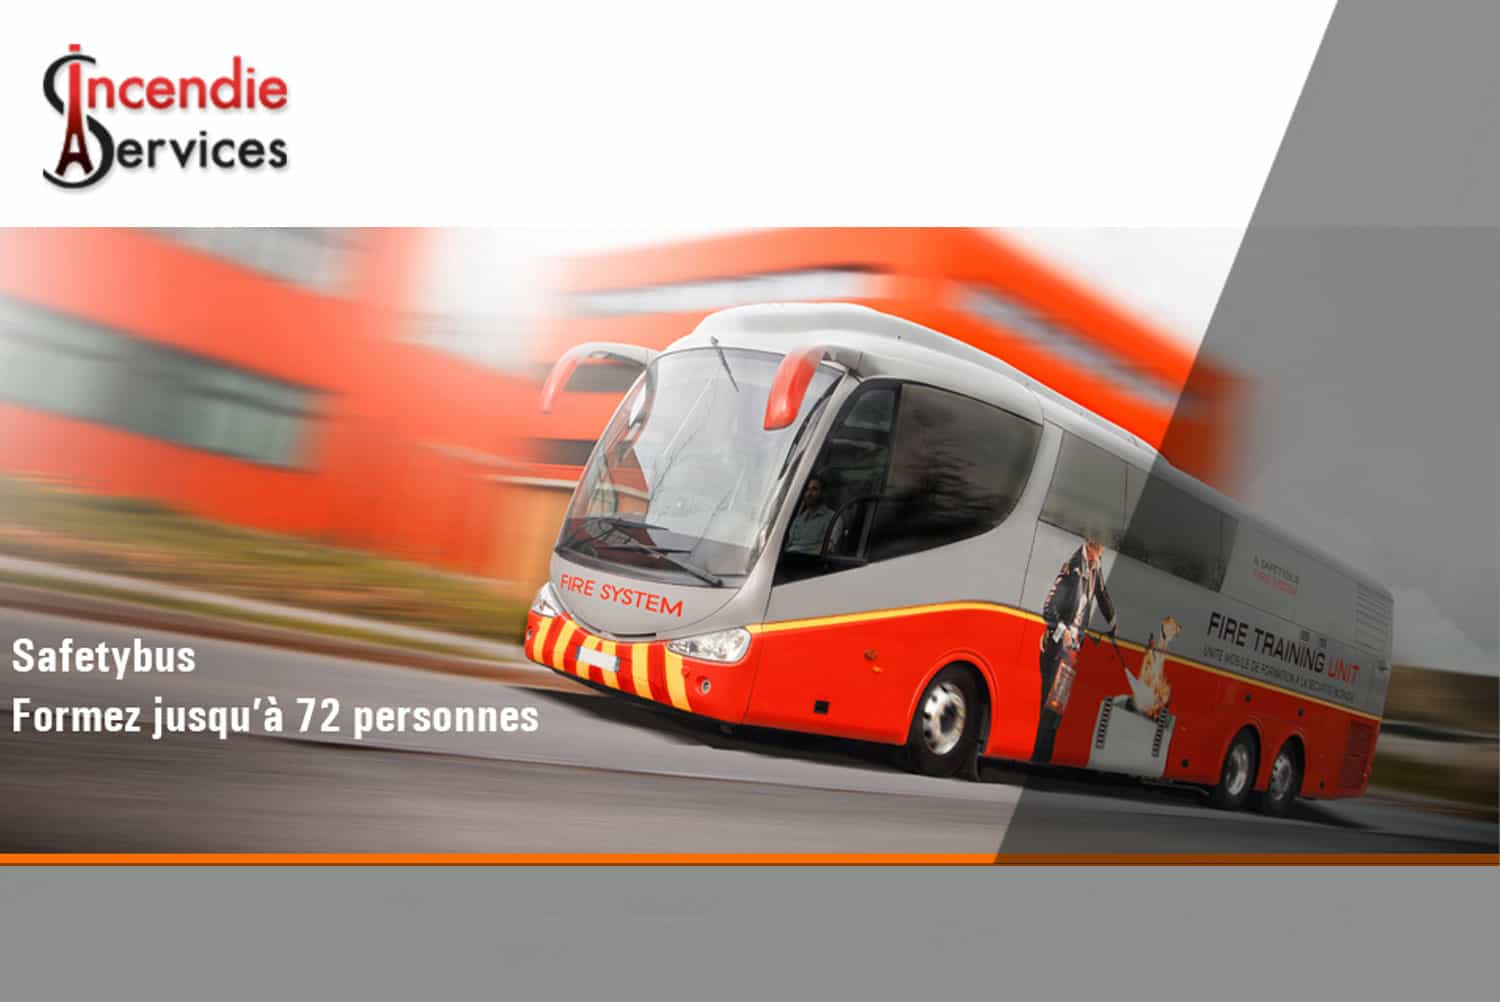 "Tarifs/Infos - Bus Formation Incendie - SAFETYBUS | PFI Formation - Organisme de Formation Agrée - ""bus formation incendie"" - ""safetybus"""